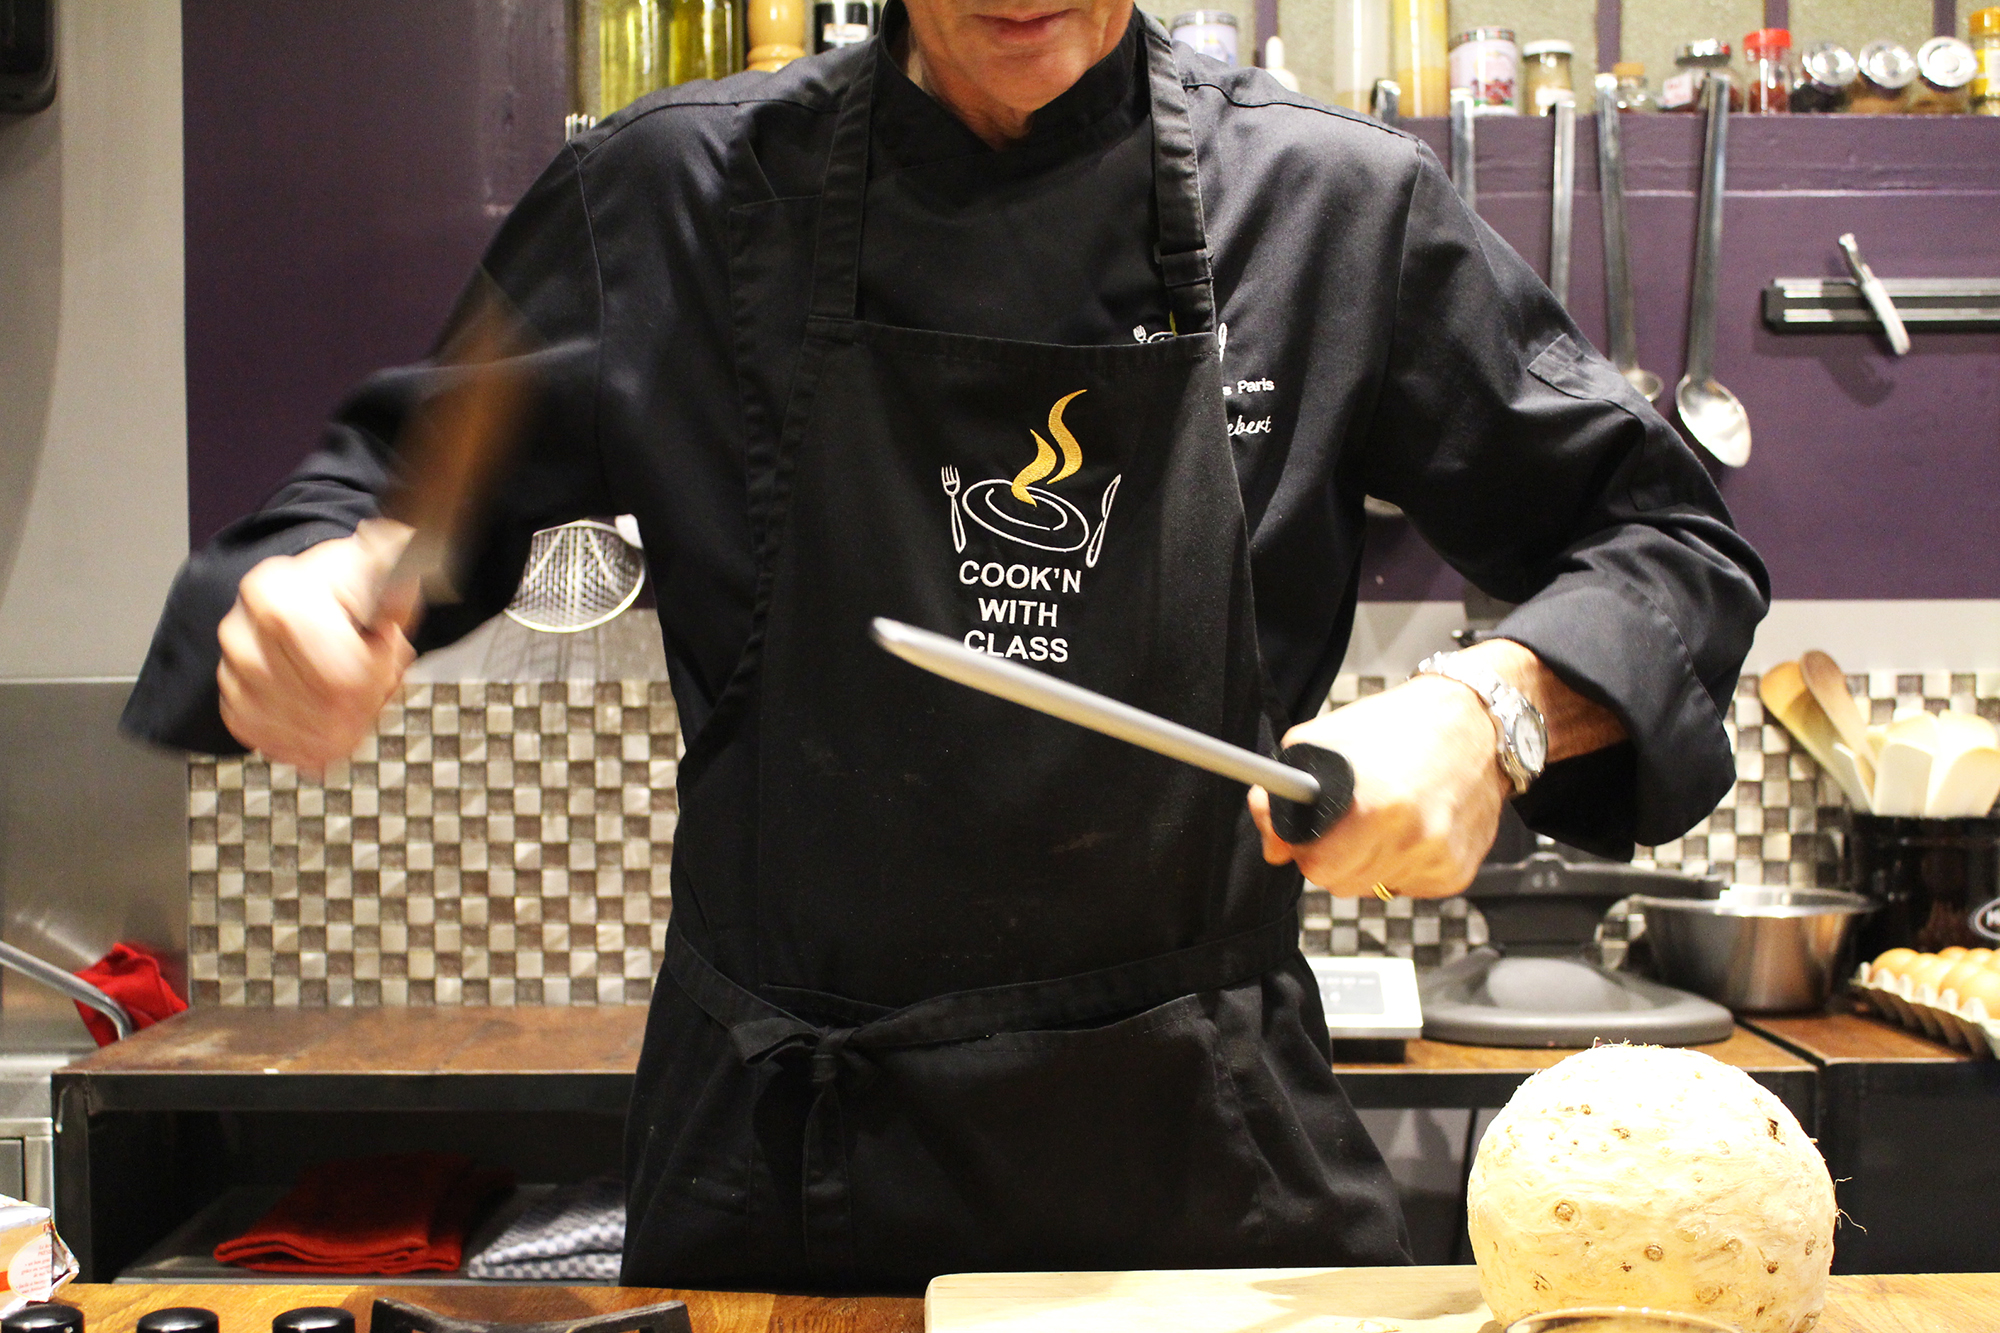 chef patrick sharpening knives